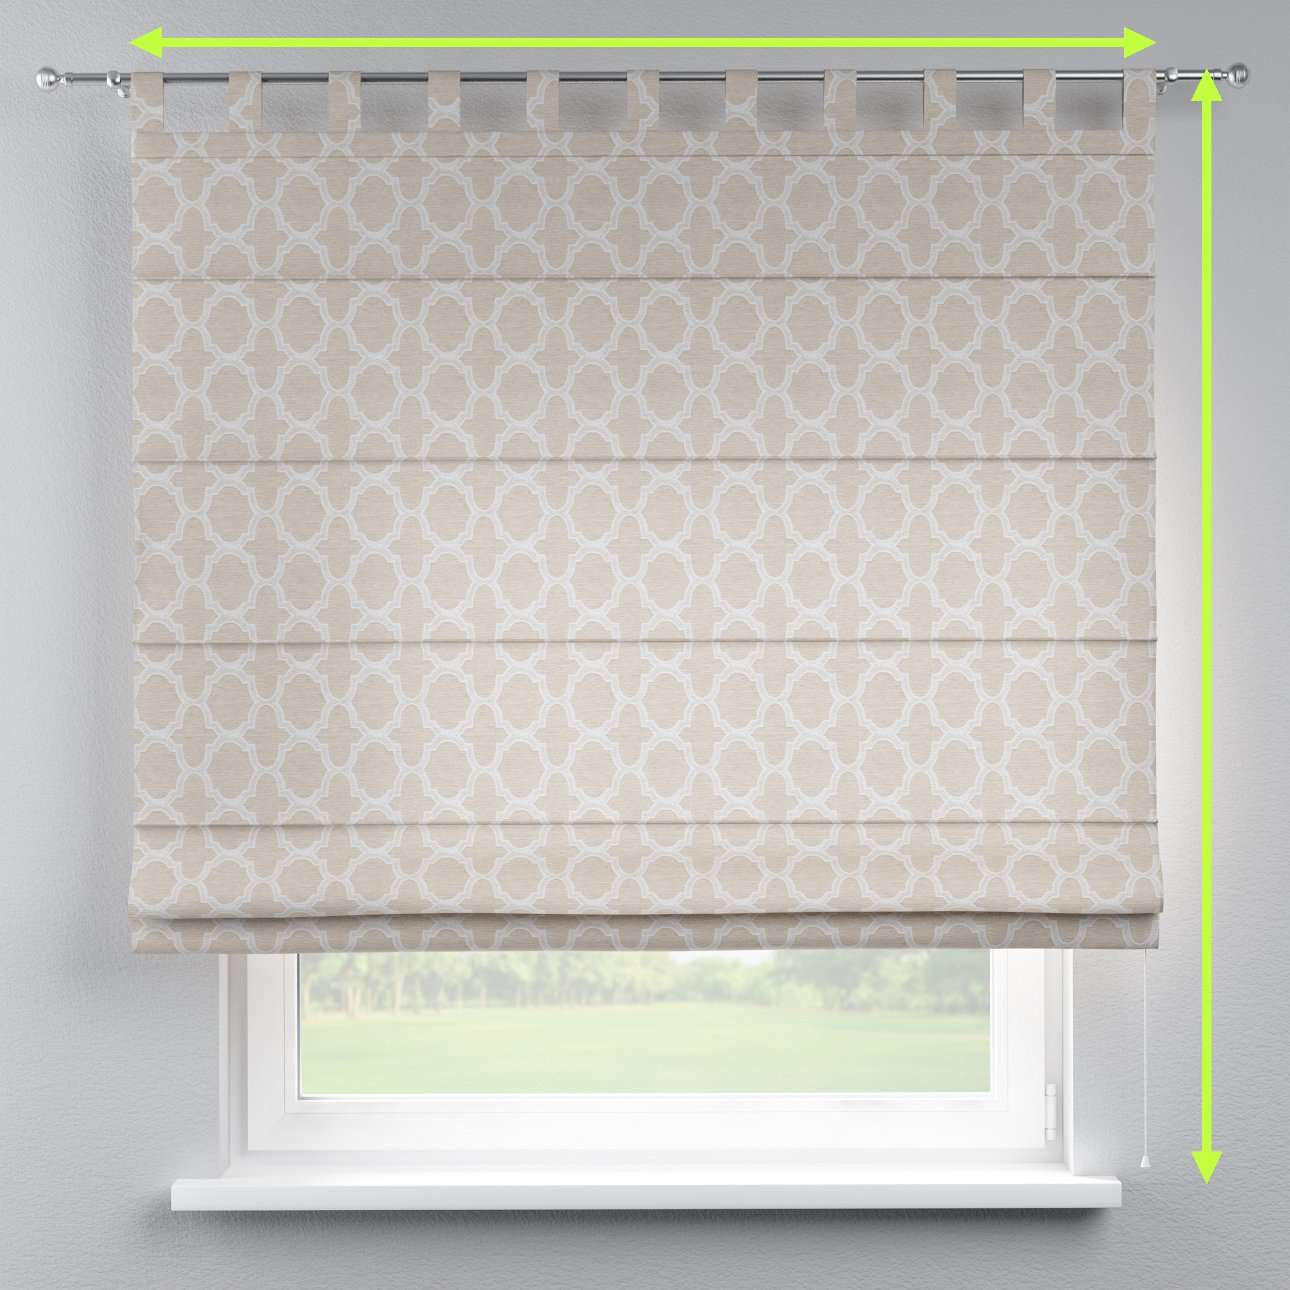 Verona tab top roman blind in collection Rustica, fabric: 138-25